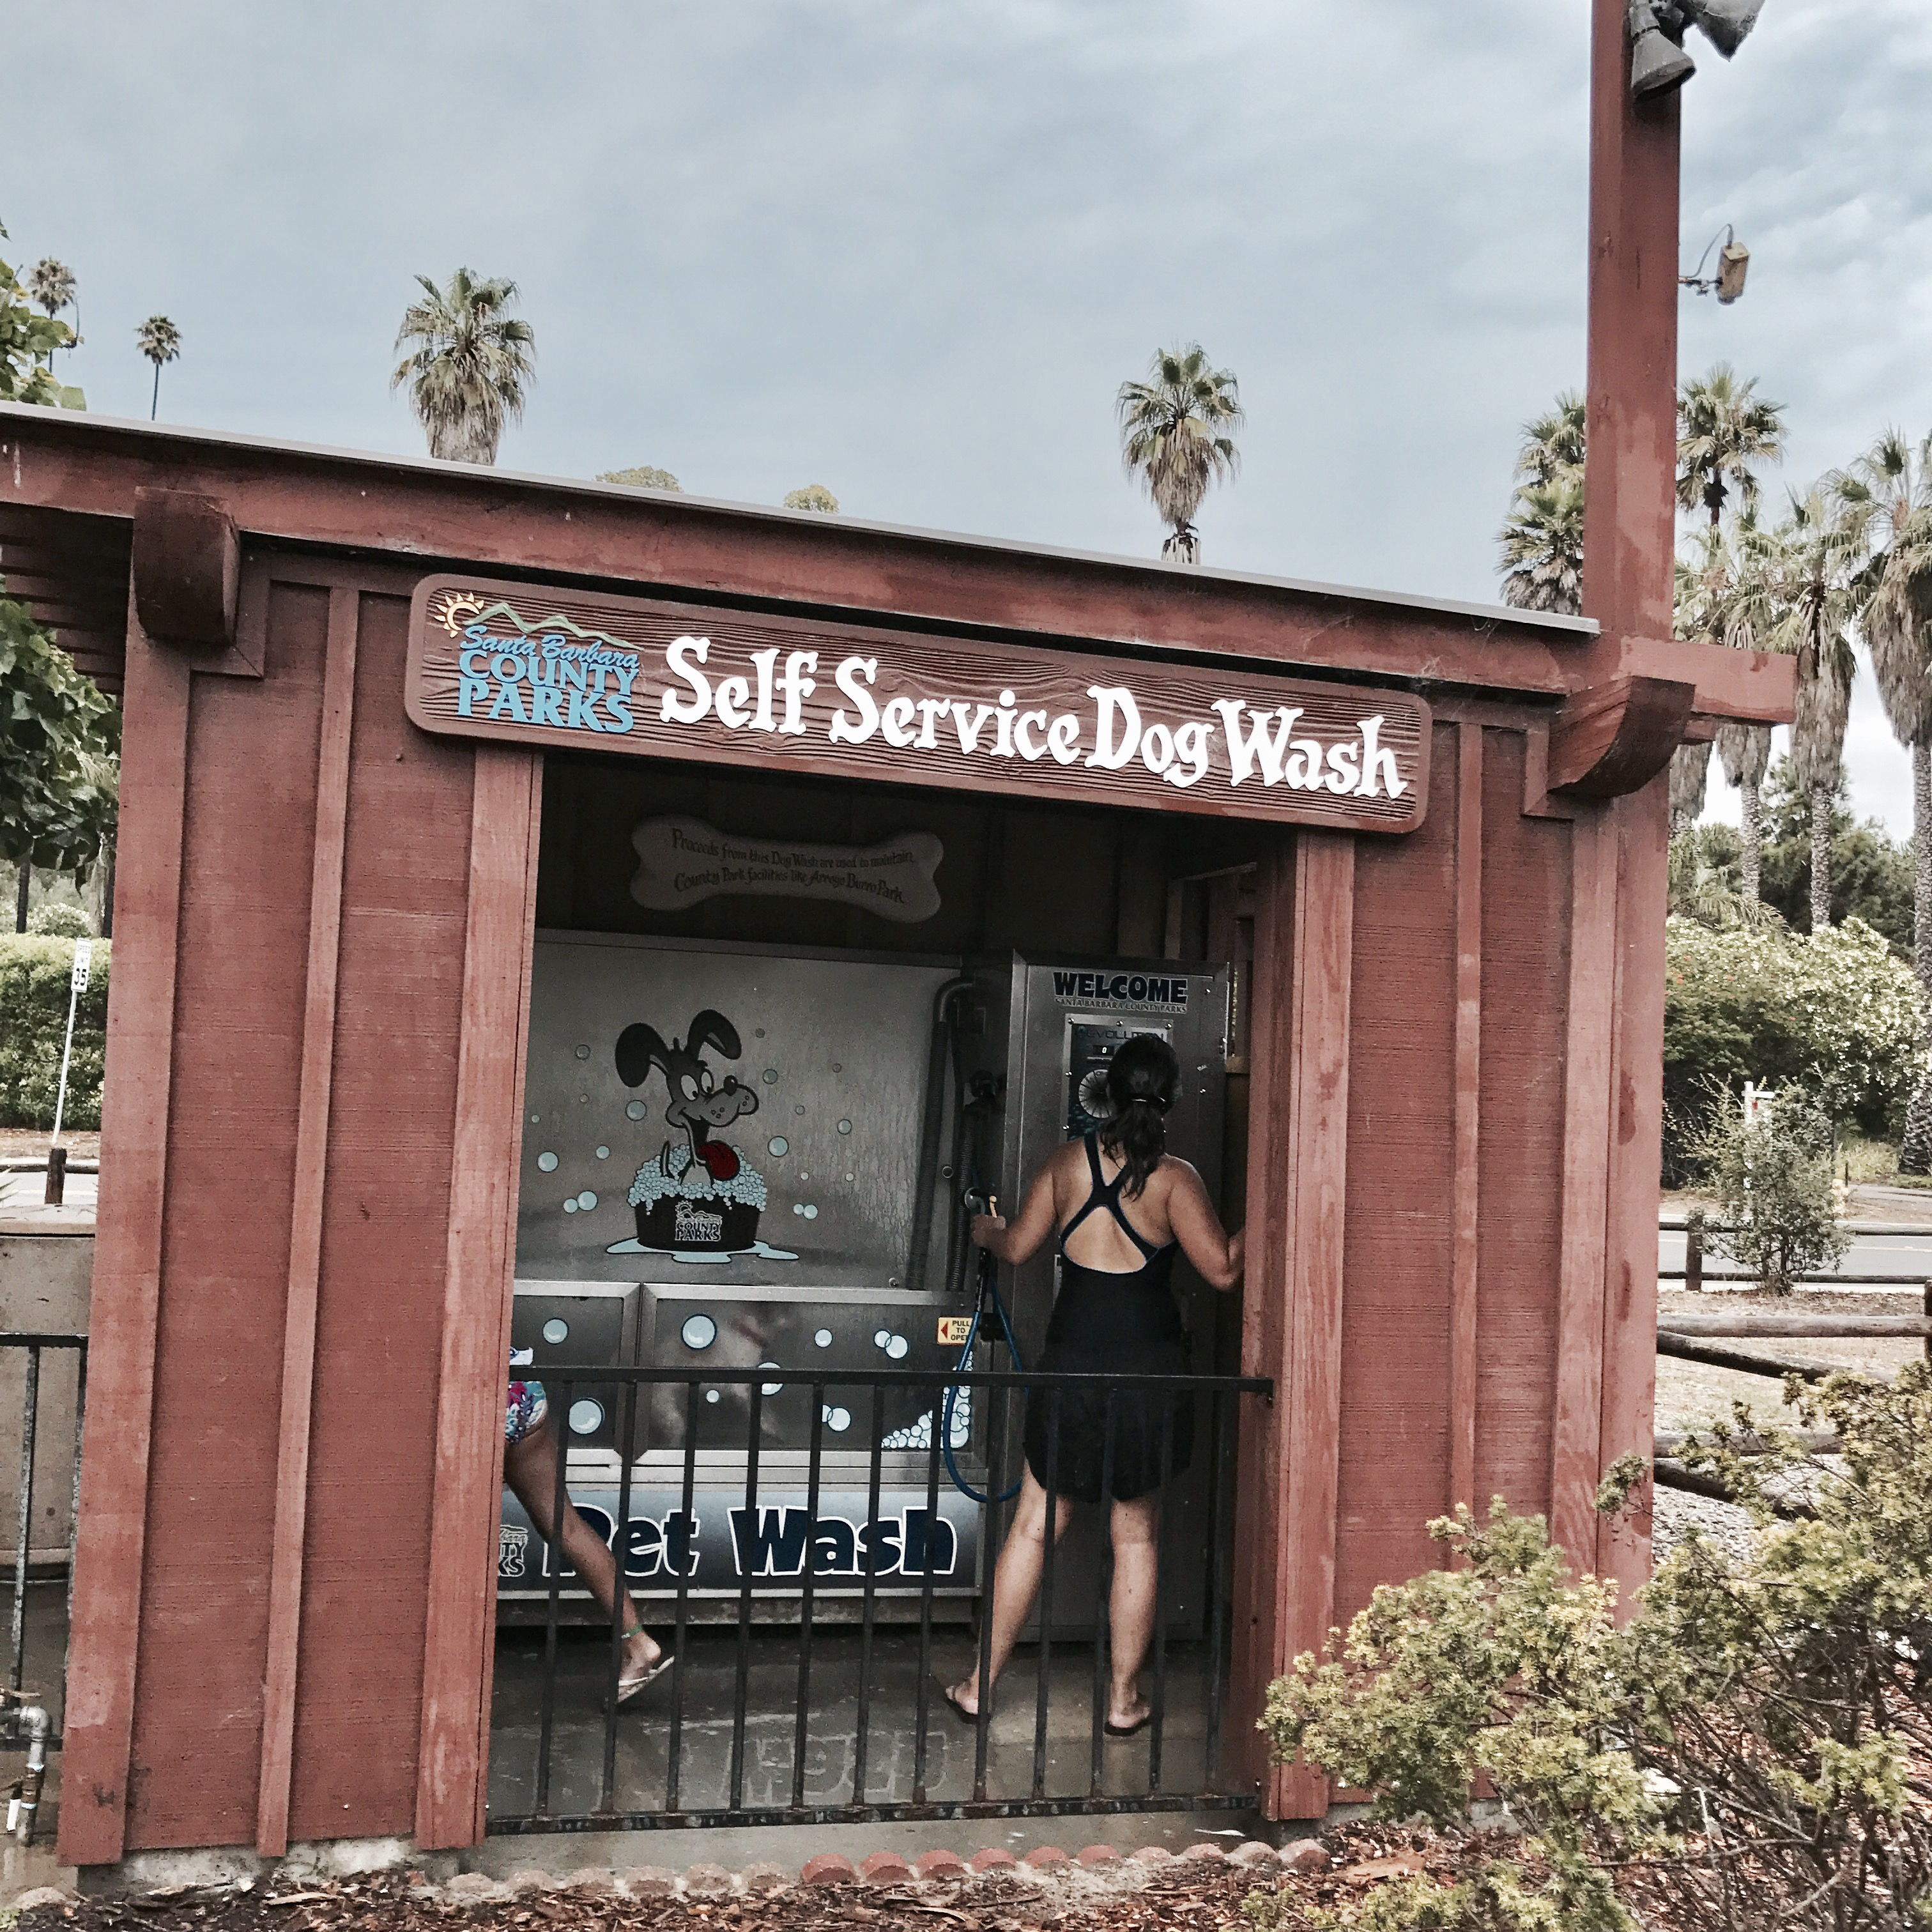 Travel tuesday an eventful three day weekend getaway to santa self service wash stations a blessing in disguise after all the sand and water hit us pretty good and then it was back to the hotel to clean up and solutioingenieria Gallery